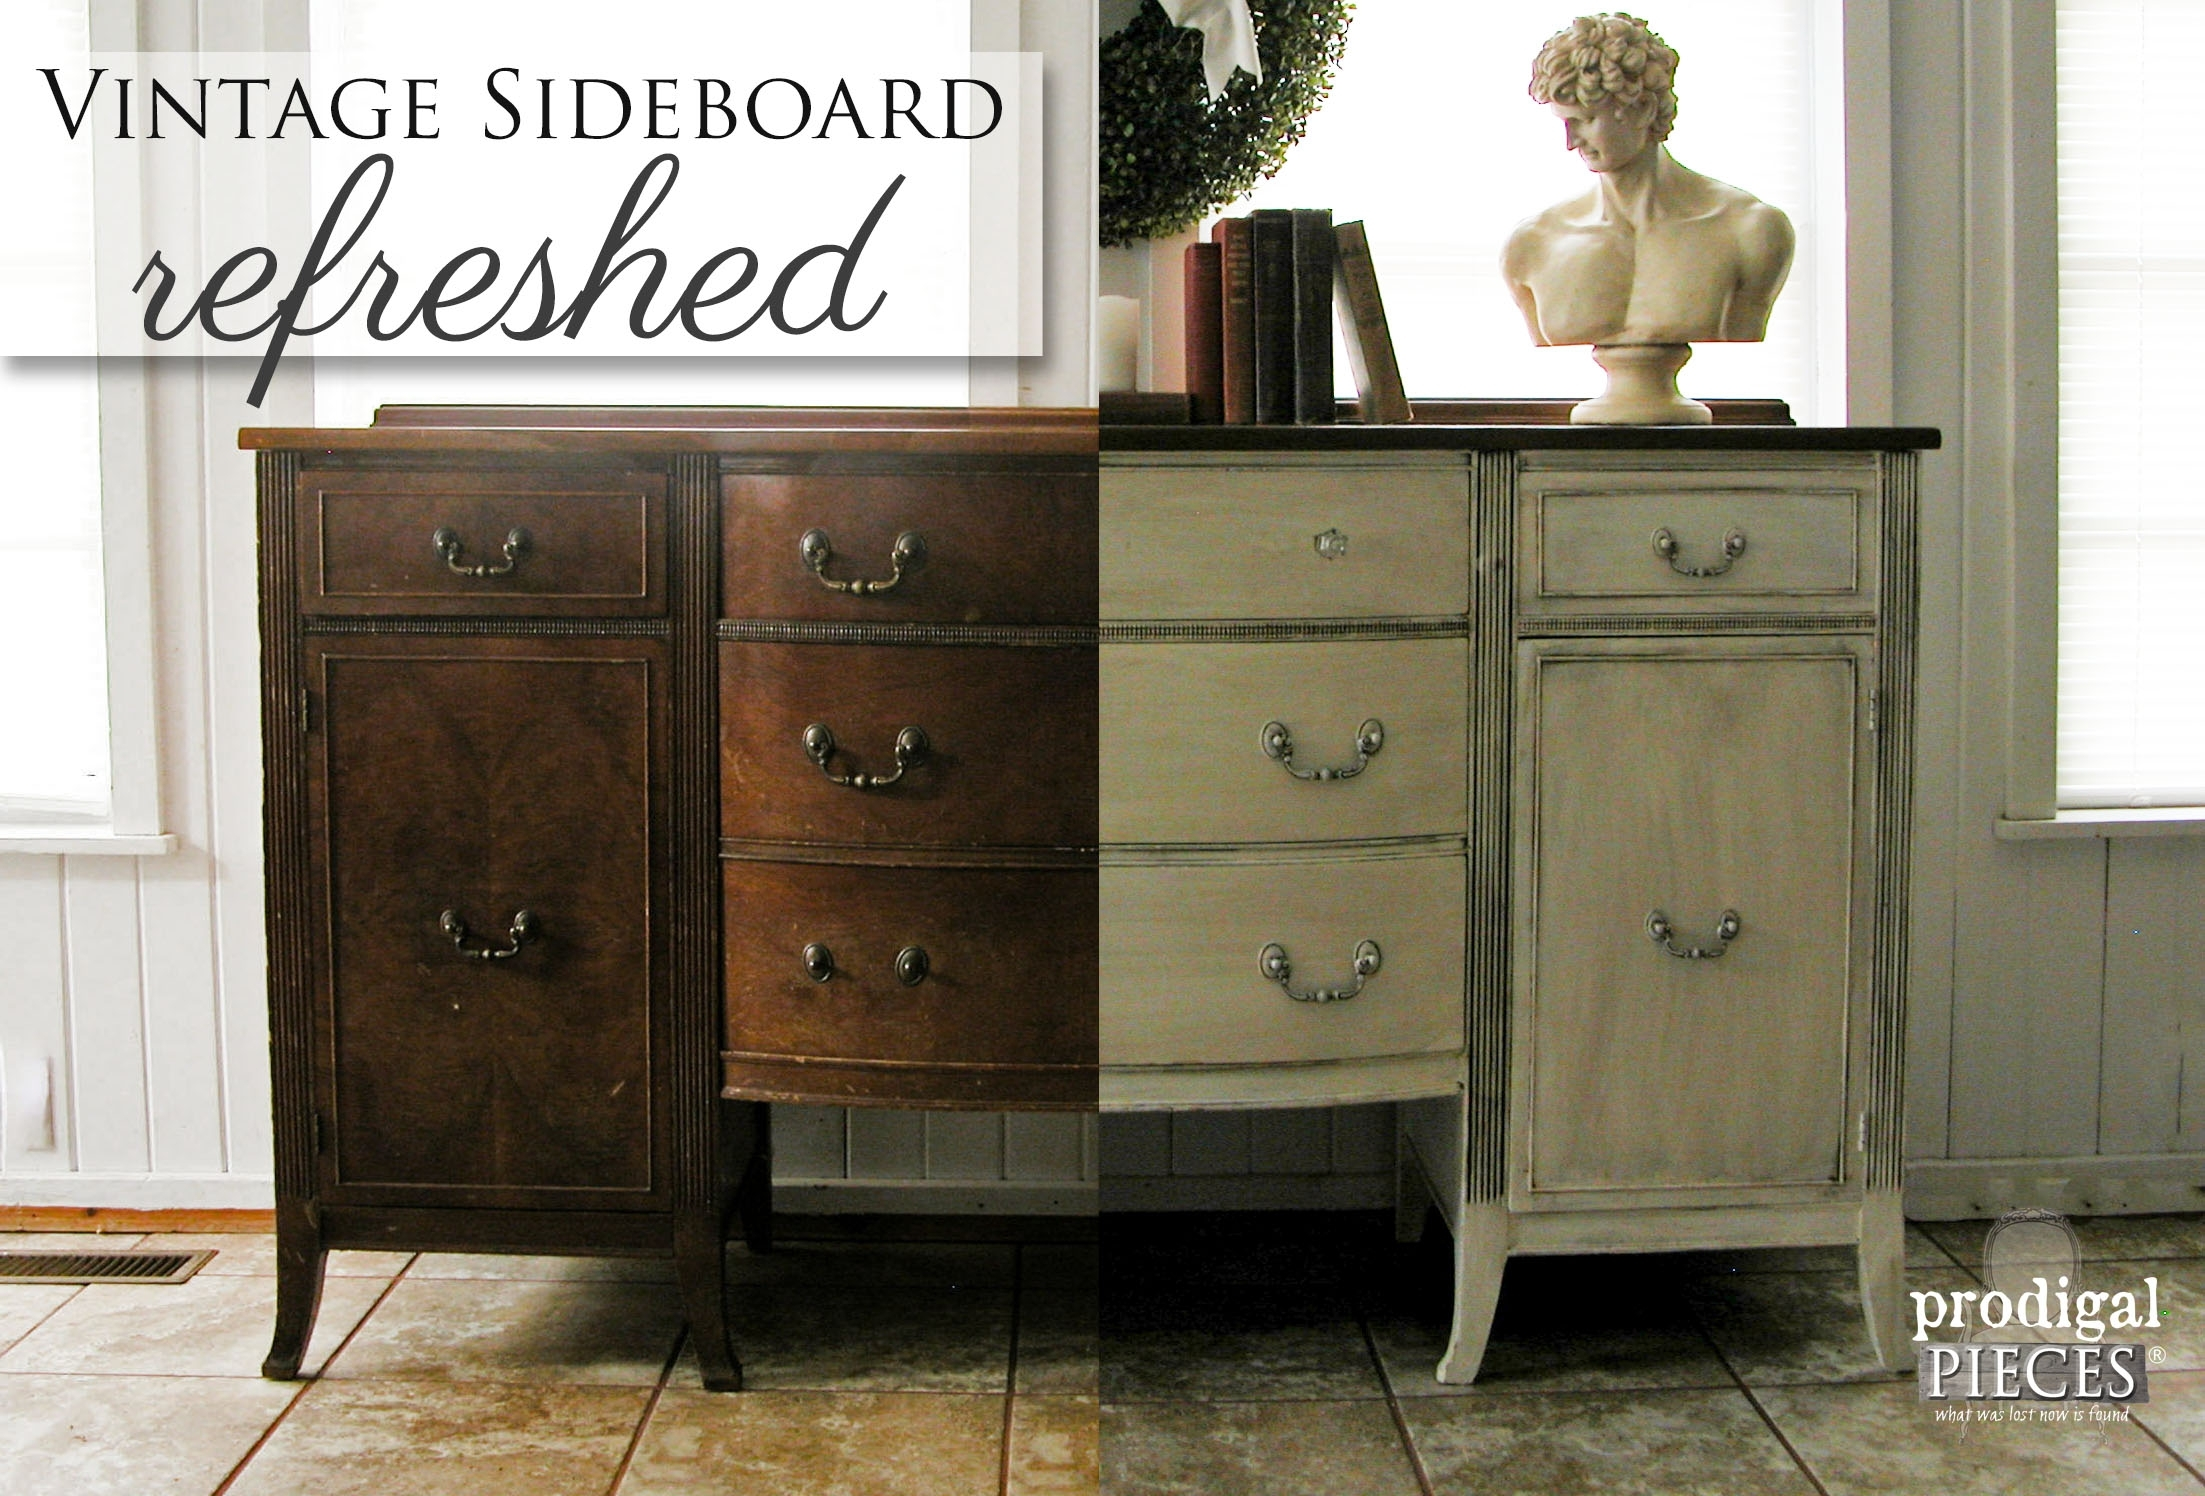 Inspiration about Vintage Sideboard Refreshed – Prodigal Pieces Intended For 2018 Vintage Brown Textured Sideboards (#14 of 20)